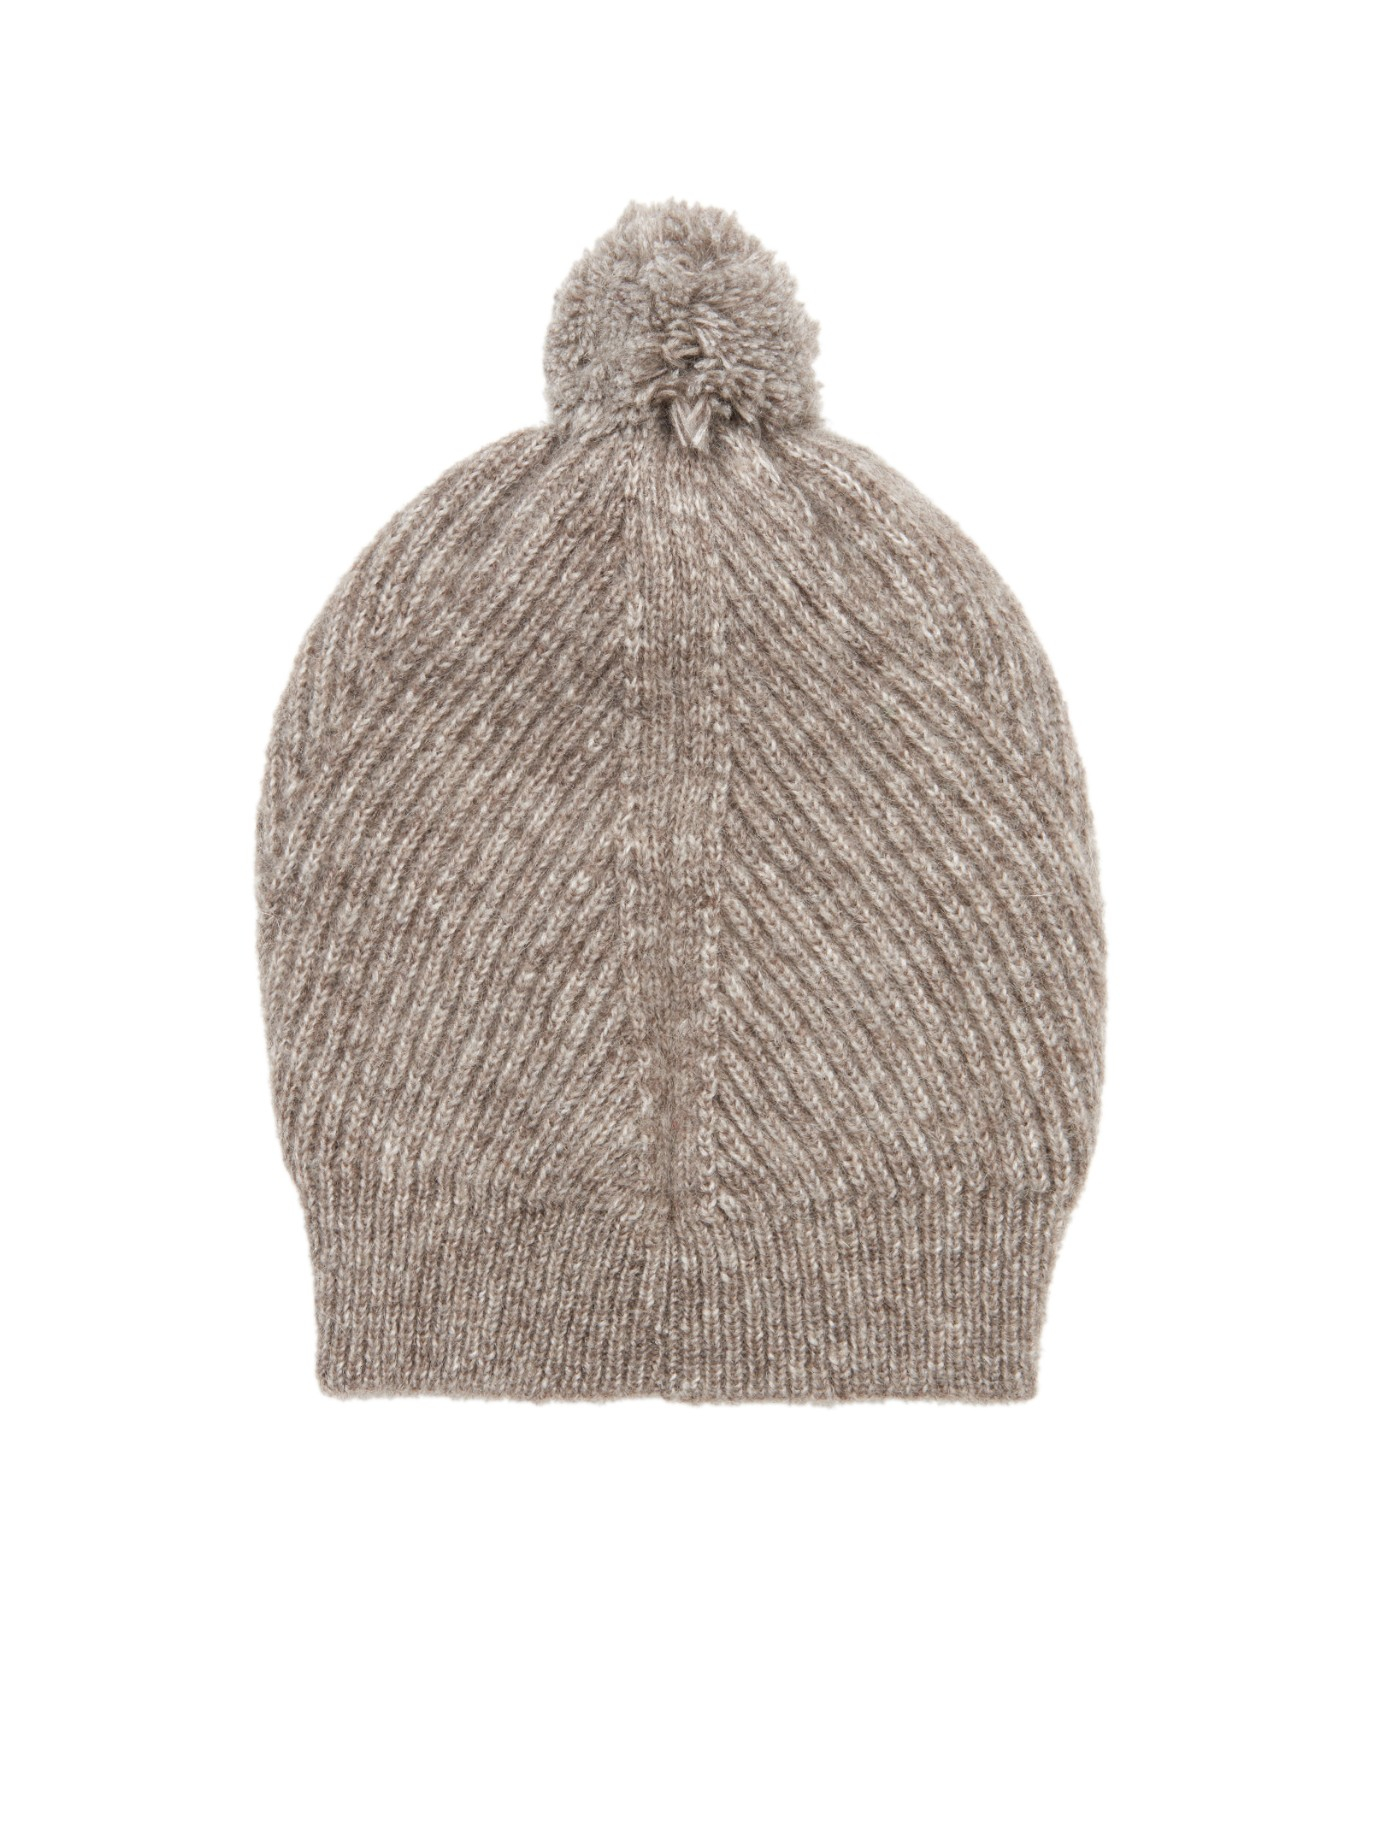 Knitting Pattern Ribbed Bobble Hat : Stella mccartney Ribbed-Knit Bobble Hat in Gray Lyst